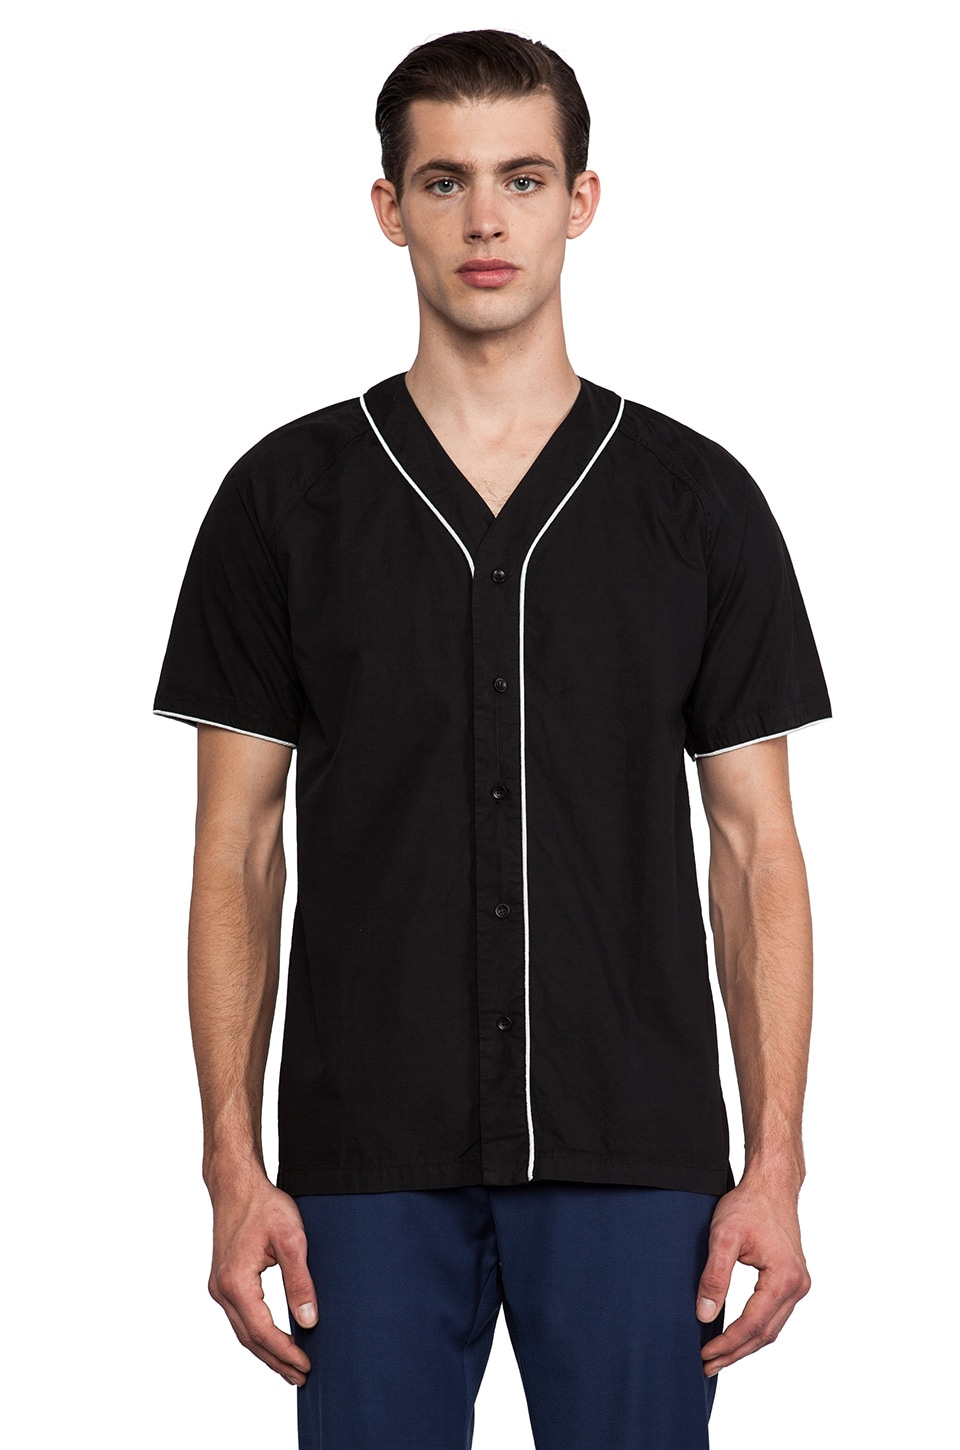 Shades of Grey by Micah Cohen Baseball Shirt in Black